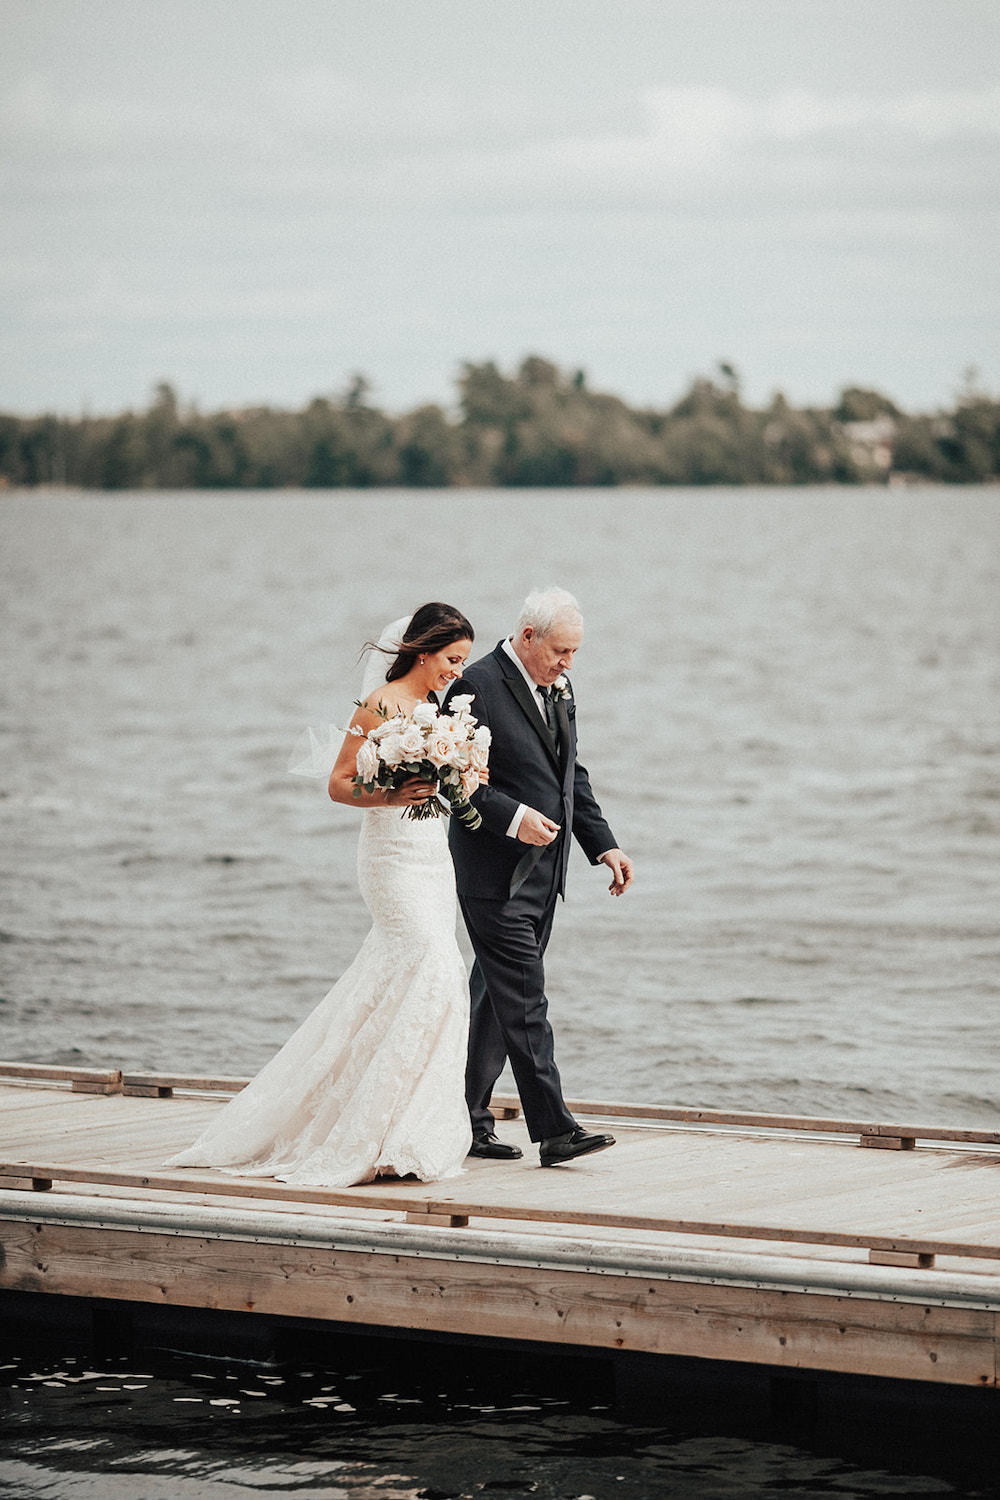 Lake Wedding Ideas - Luxury Wedding in Kenora